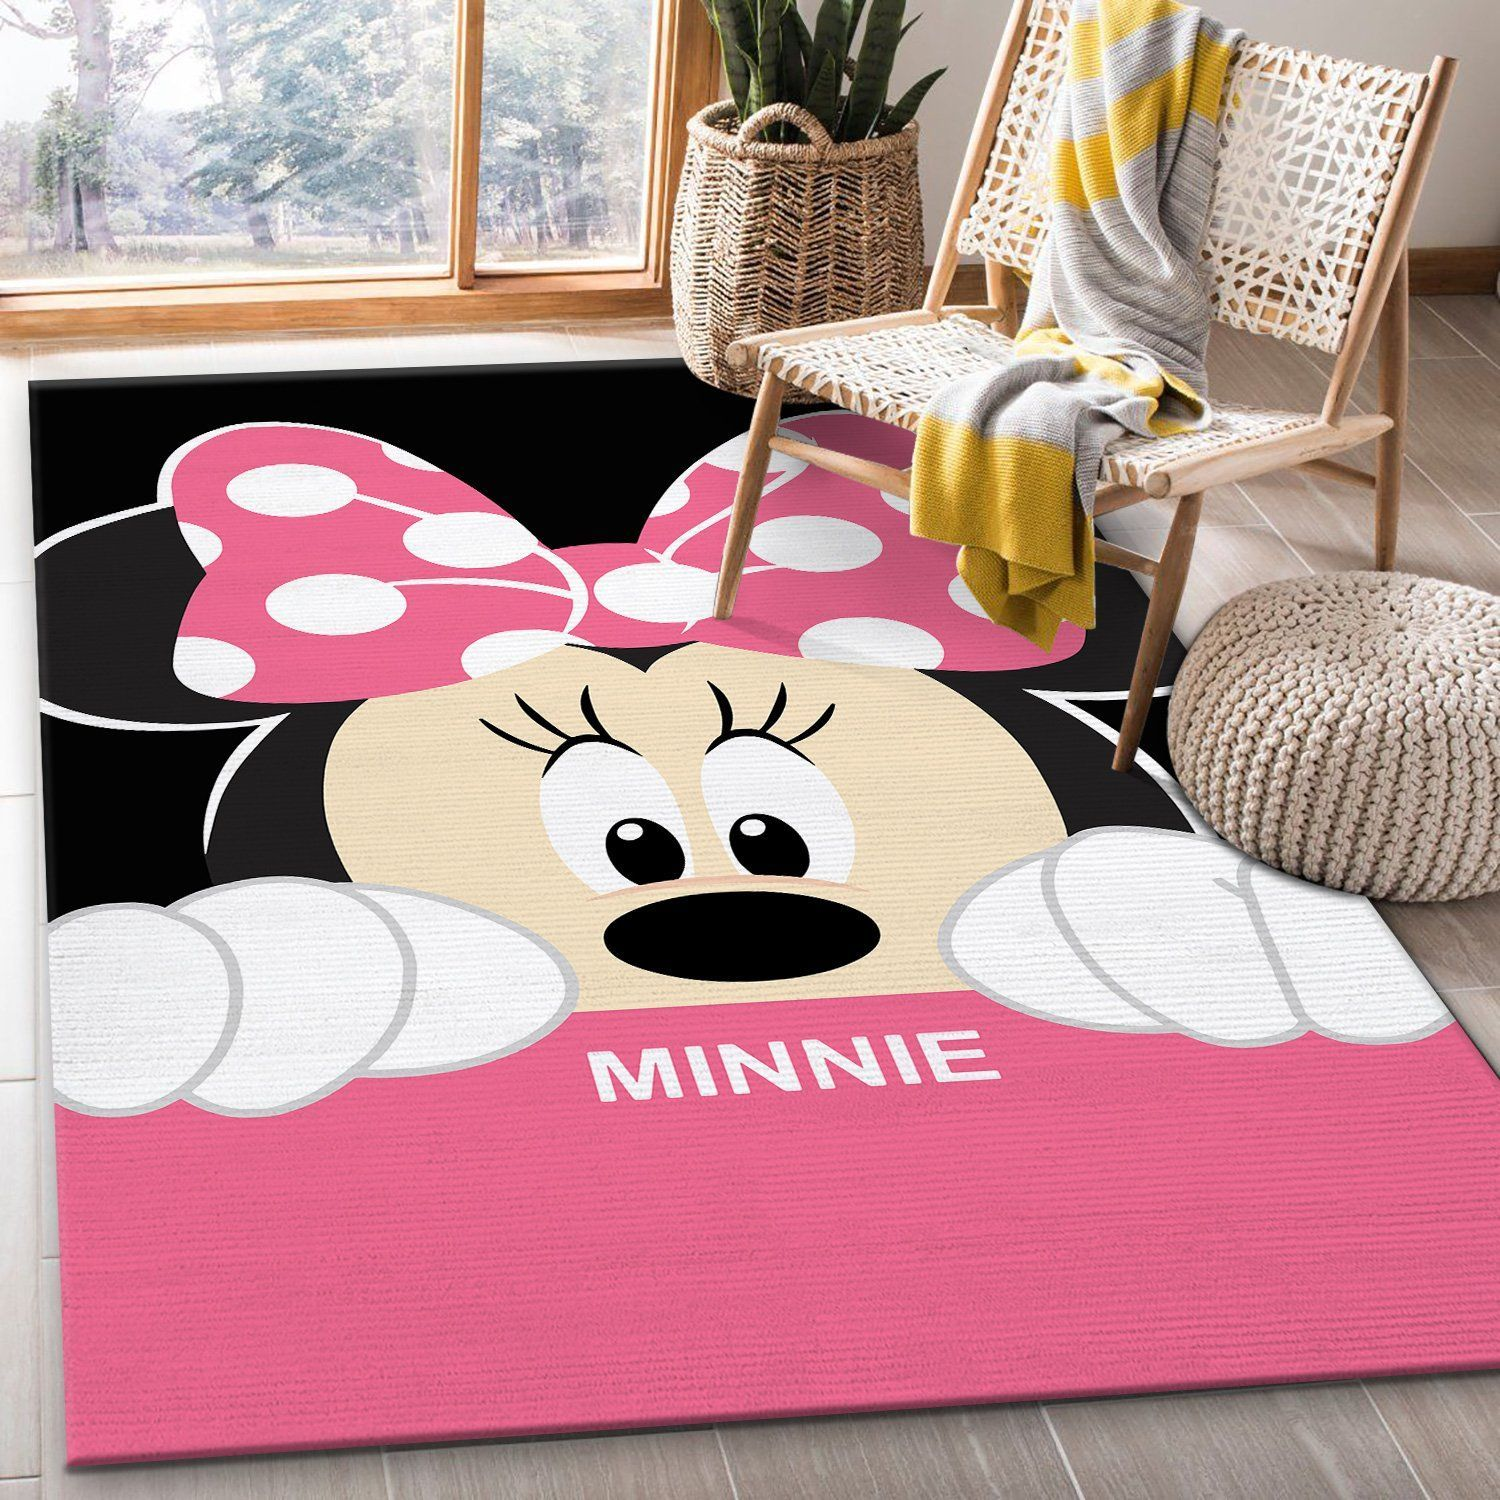 Minnie Mouse Disney Movies Rug